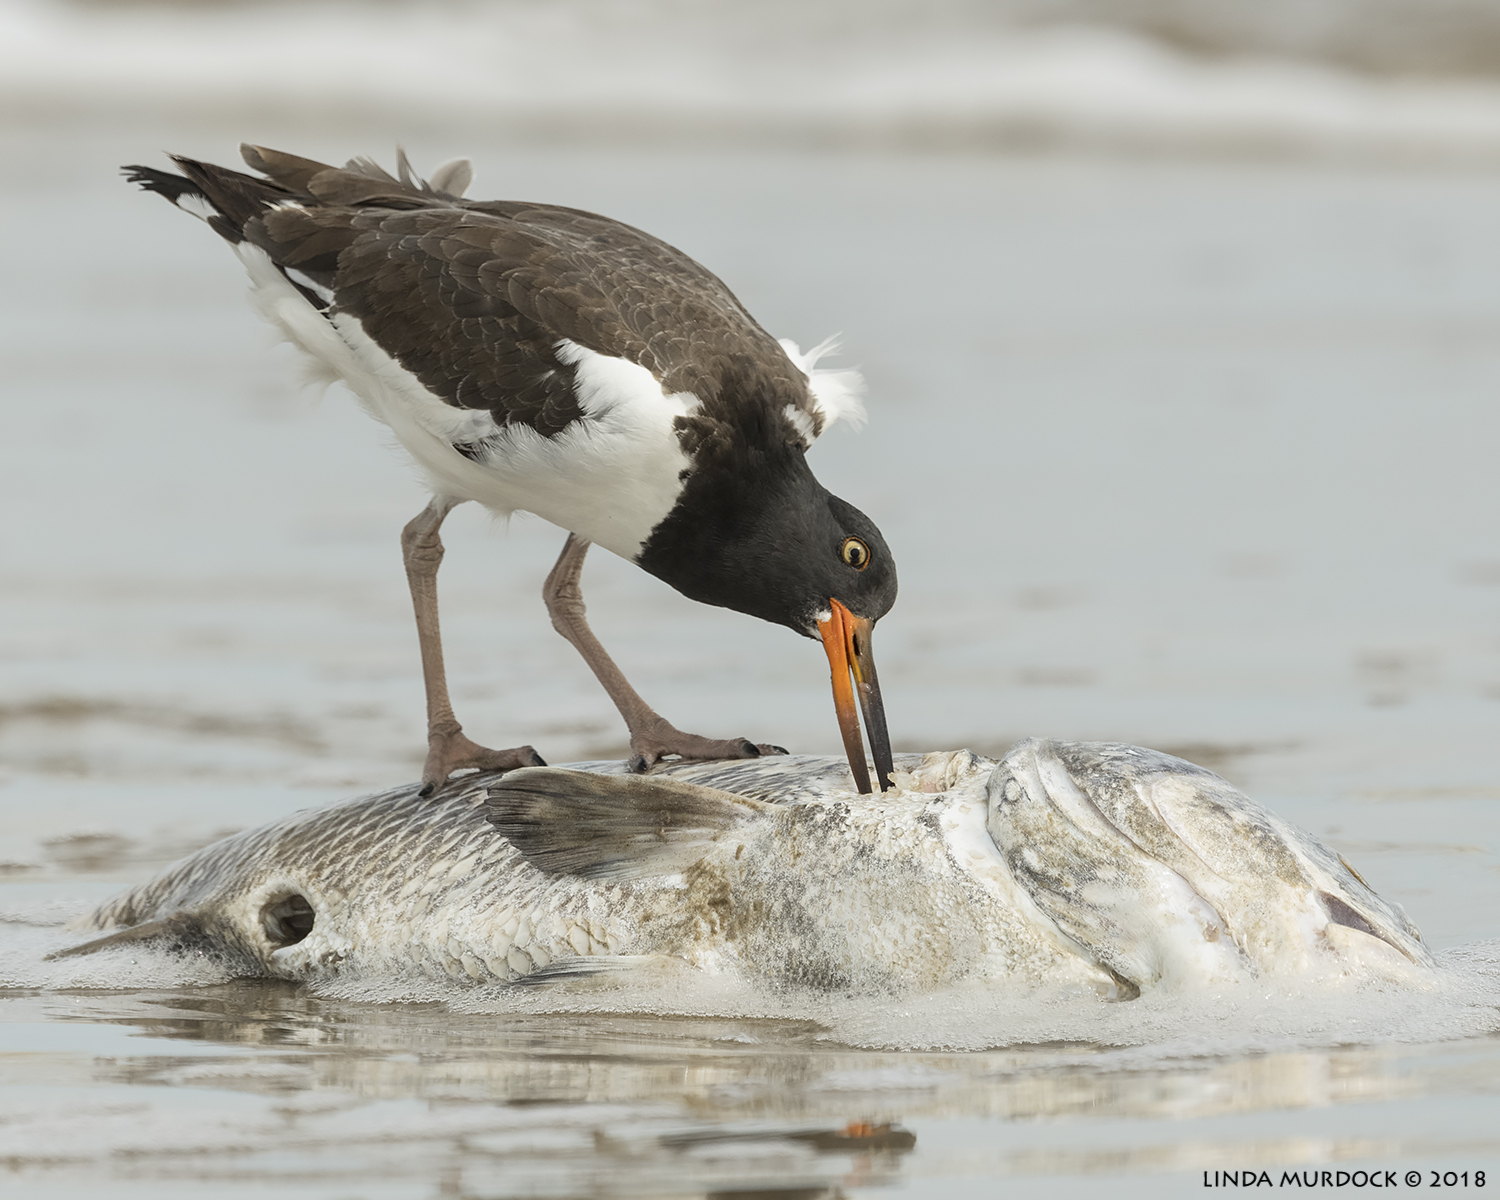 Young Oystercatcher with a giant meal    Nikon D850 with NIKKOR 500mm f/4E VR with 1.4x TC ~ 1/2000 sec f/7.1 ISO 1000; out passenger window